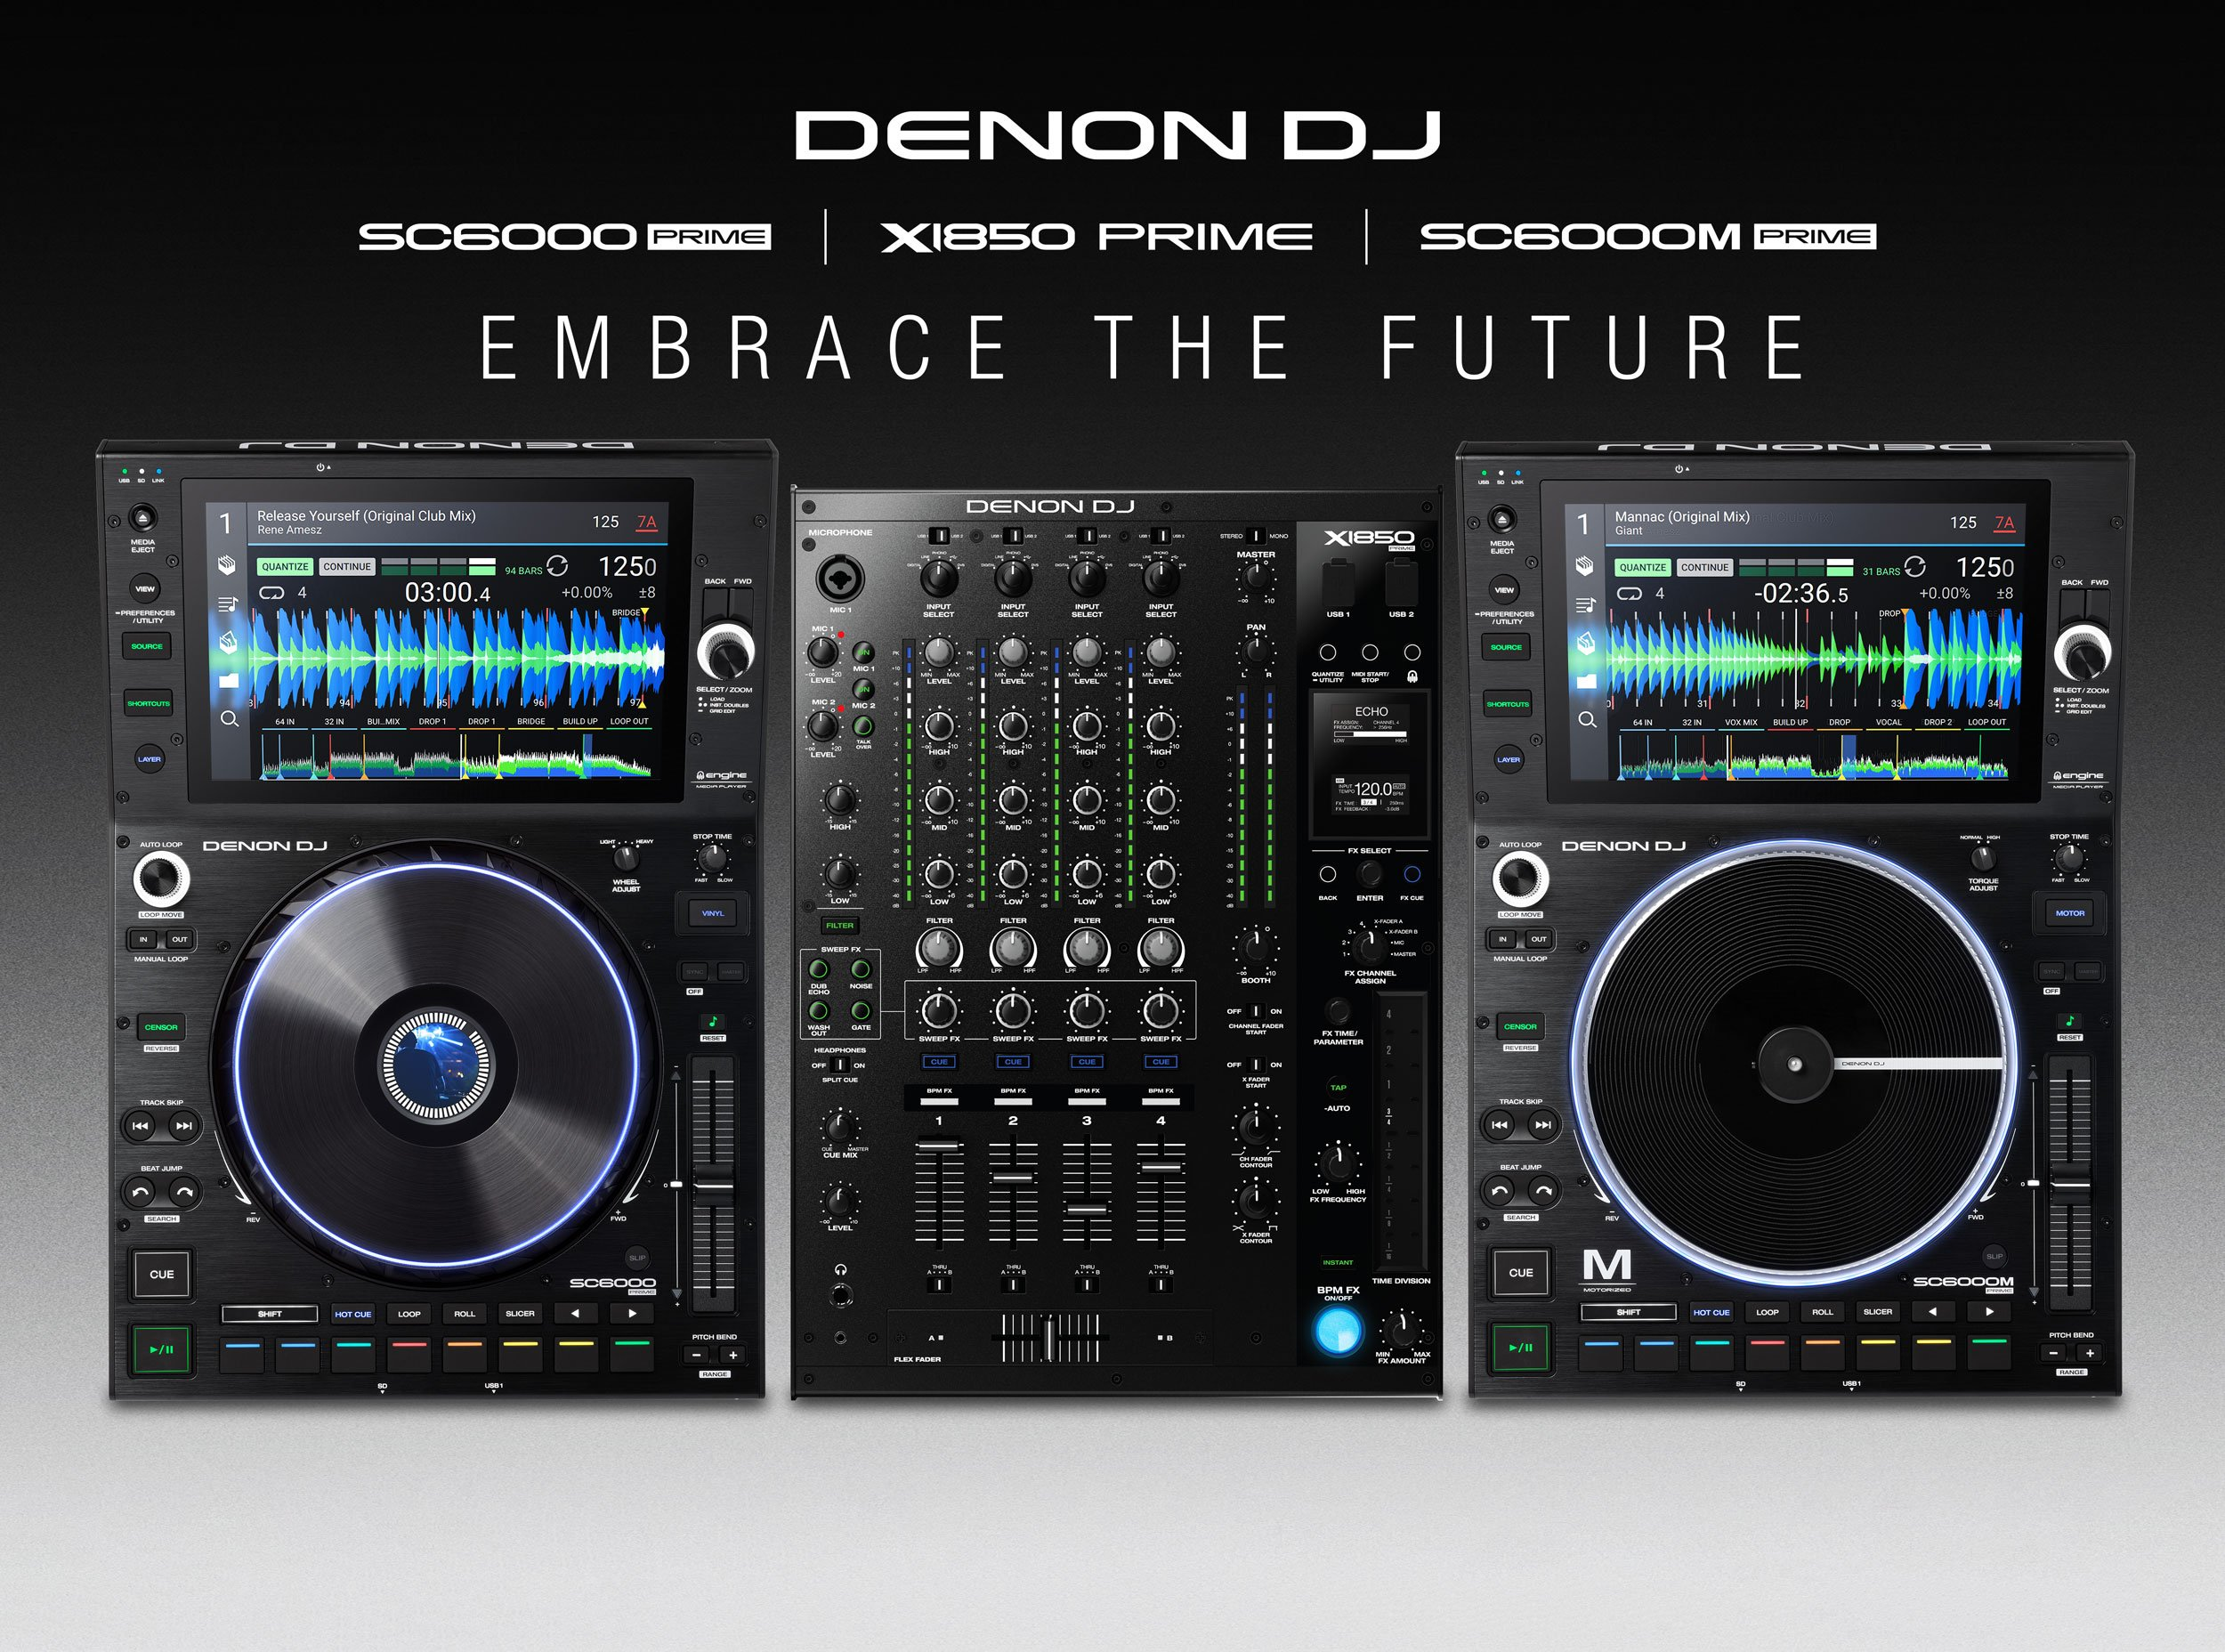 Denon DJ turnt up to 11 — the SC6000, SC6000M, and X1850 Prime 4